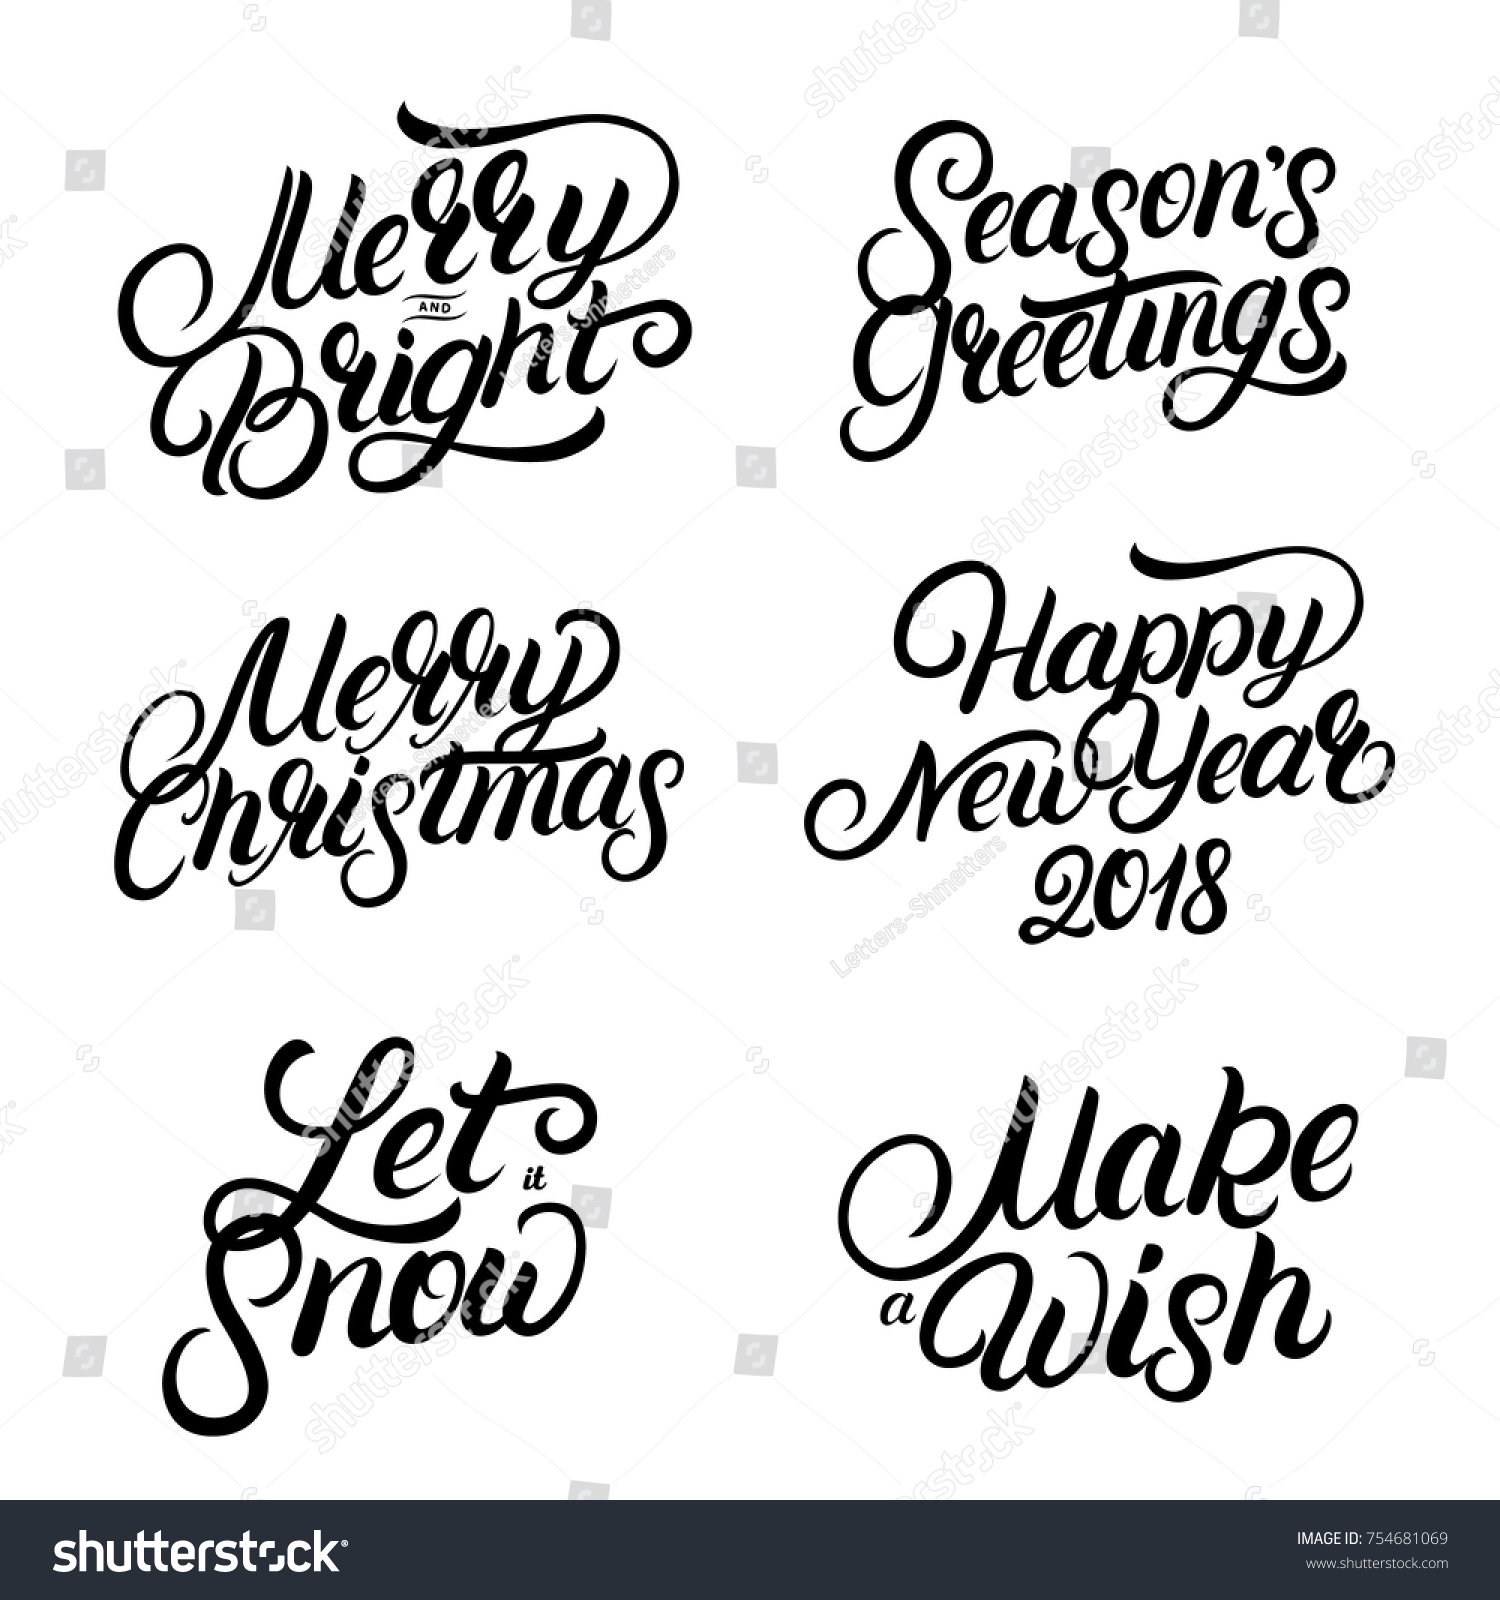 Set Christmas New Year 2018 Hand Stock Vector (Royalty Free ...